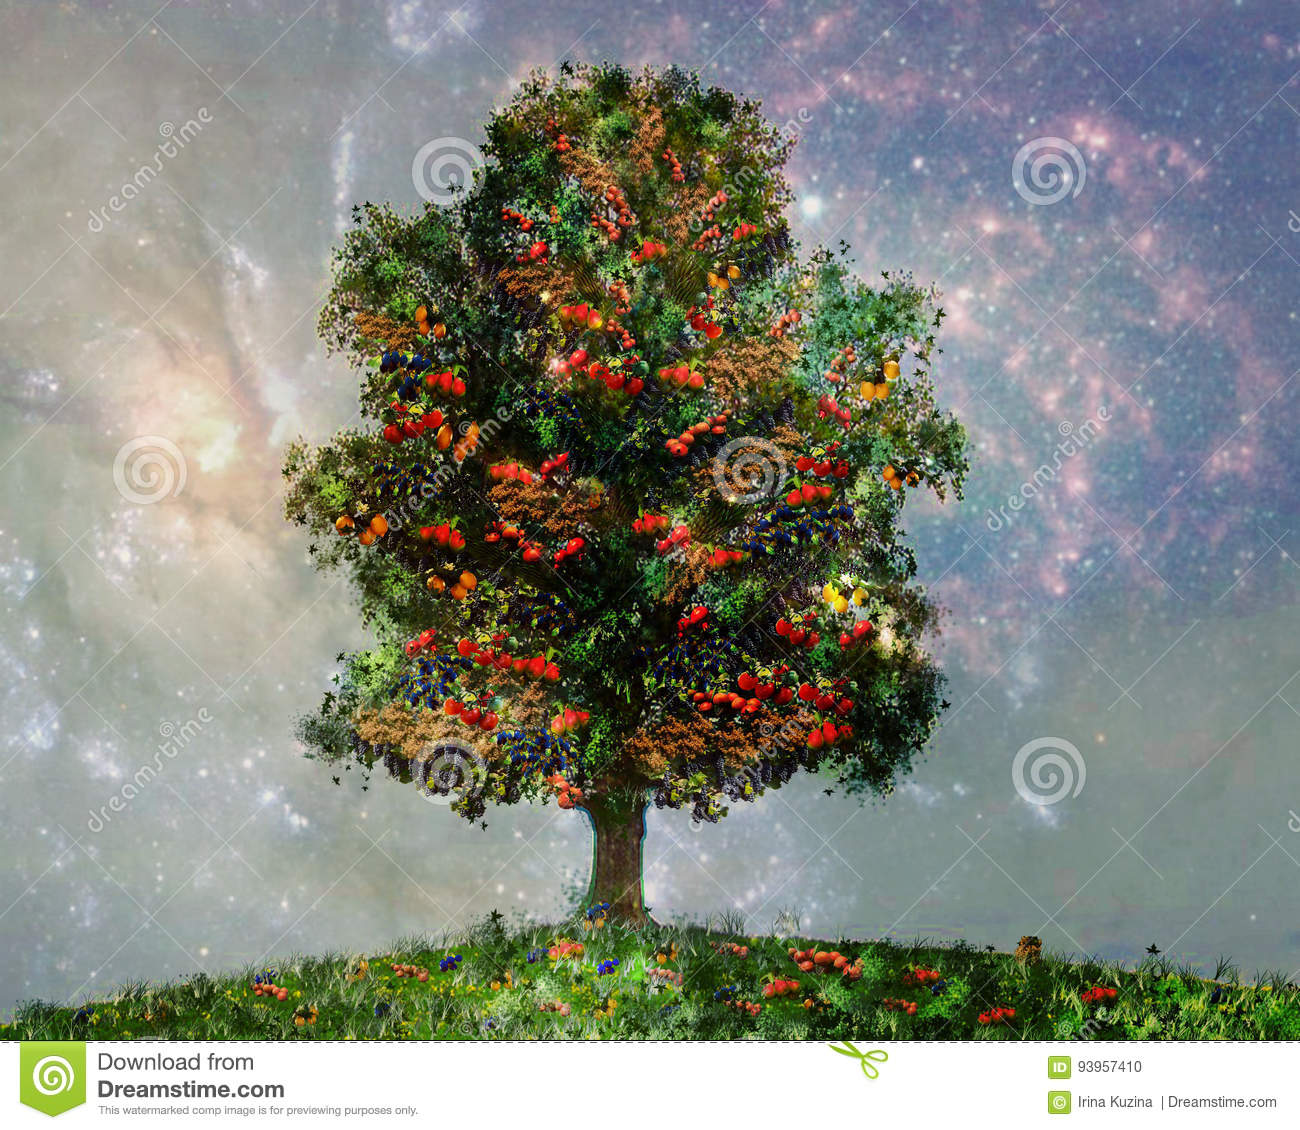 a Tree with different fruits, Bananas, oranges, apples , tomatoes, berries